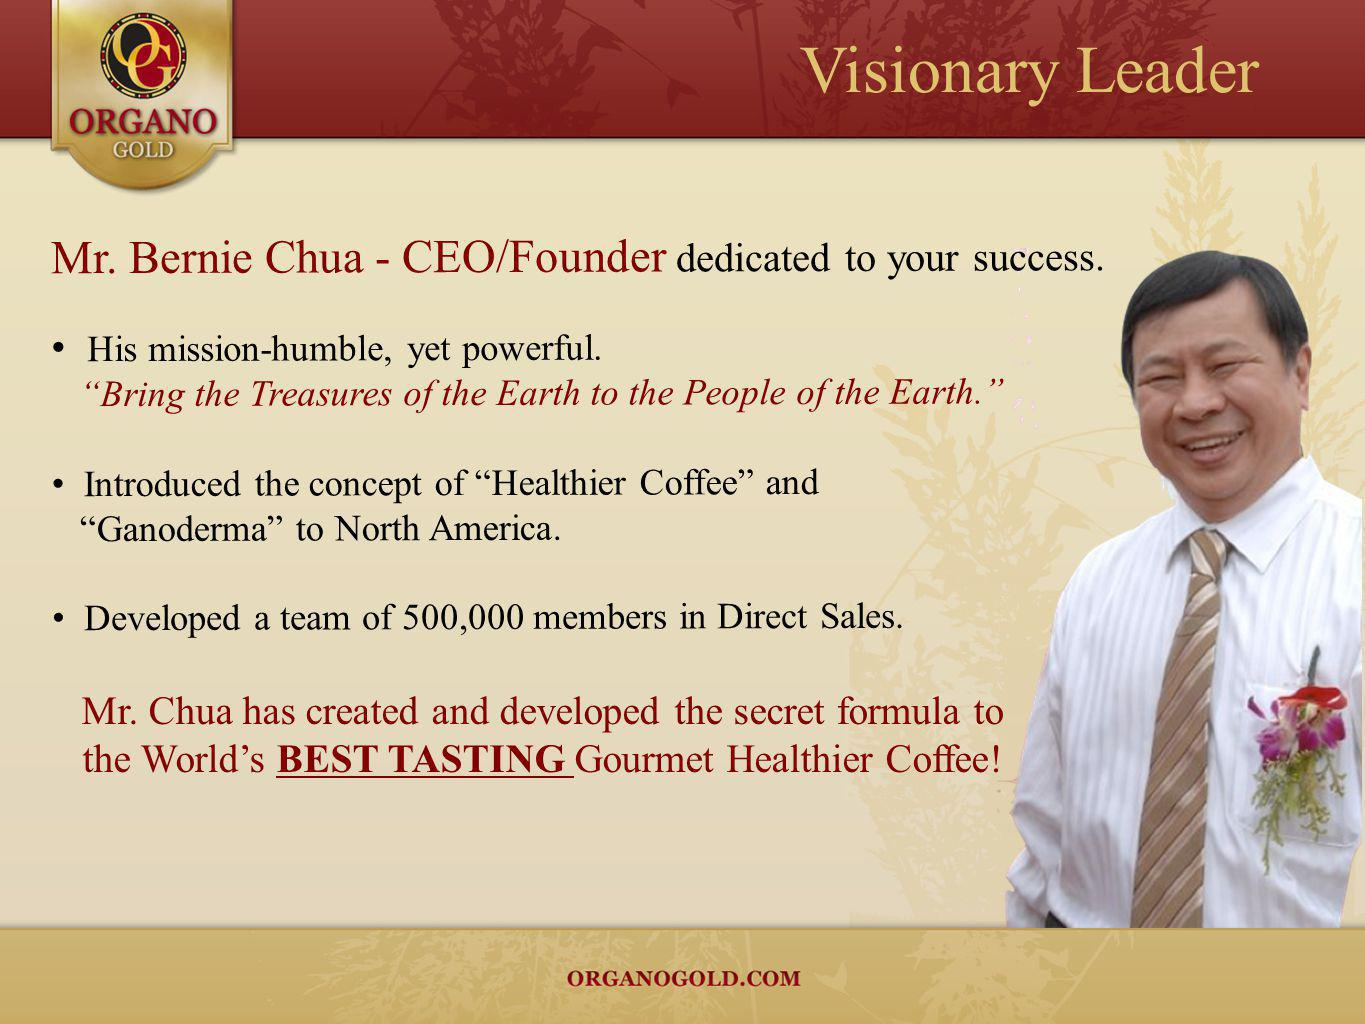 Visionary Leader Mr. Bernie Chua - CEO/Founder dedicated to your success.